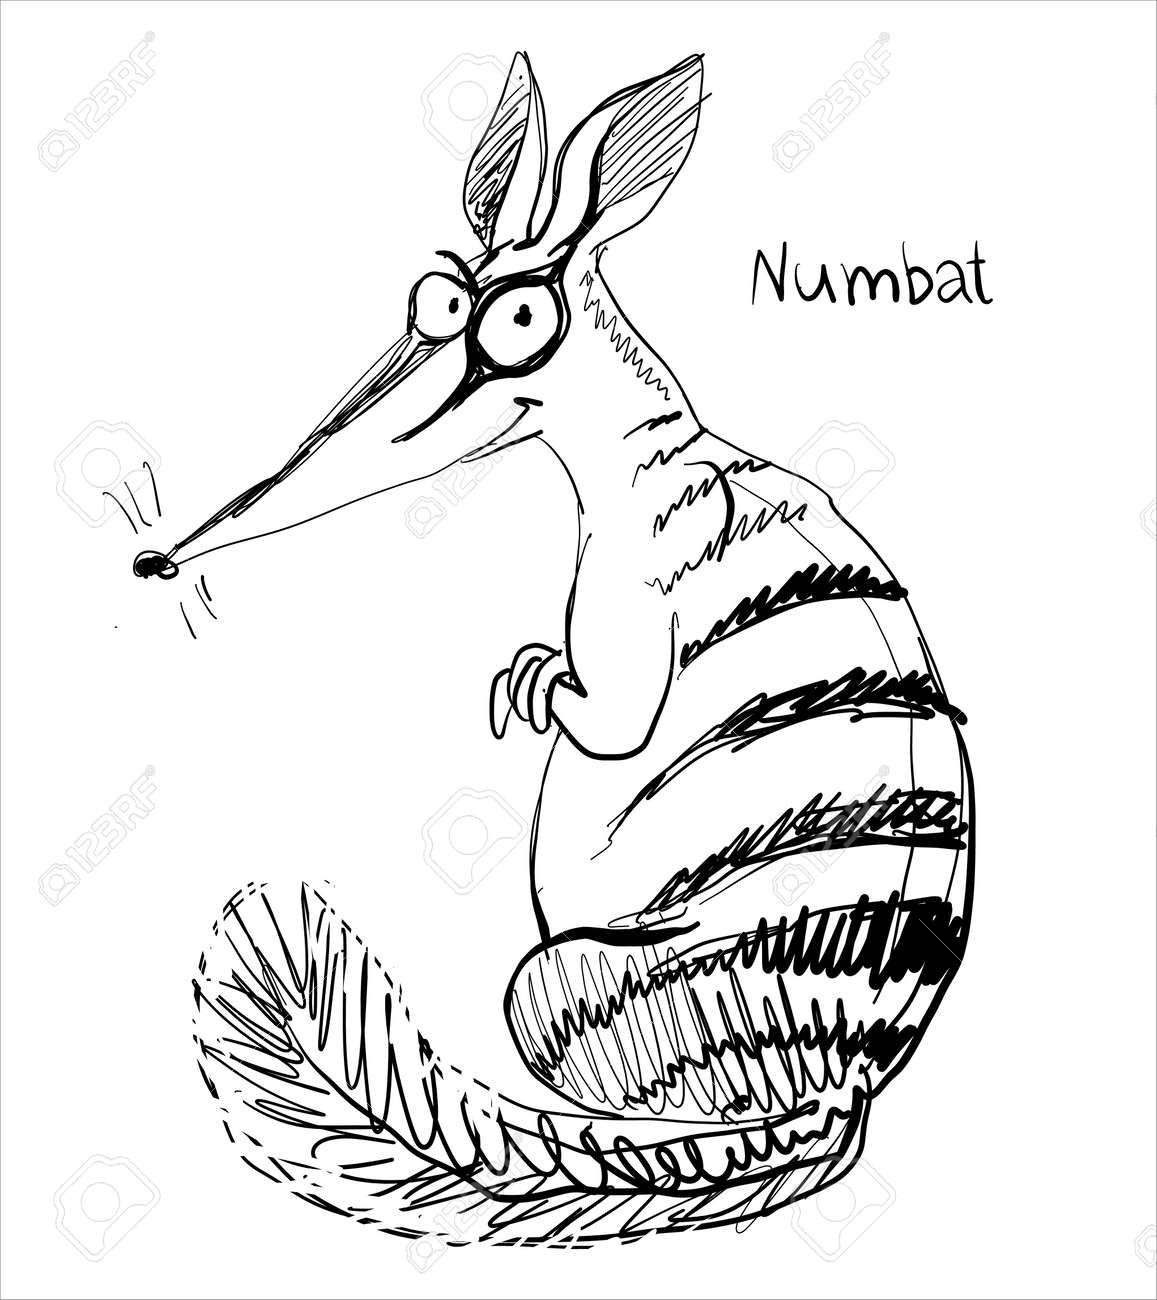 Vector. Graphic black and white sketch of a funny numbat. - 168498440